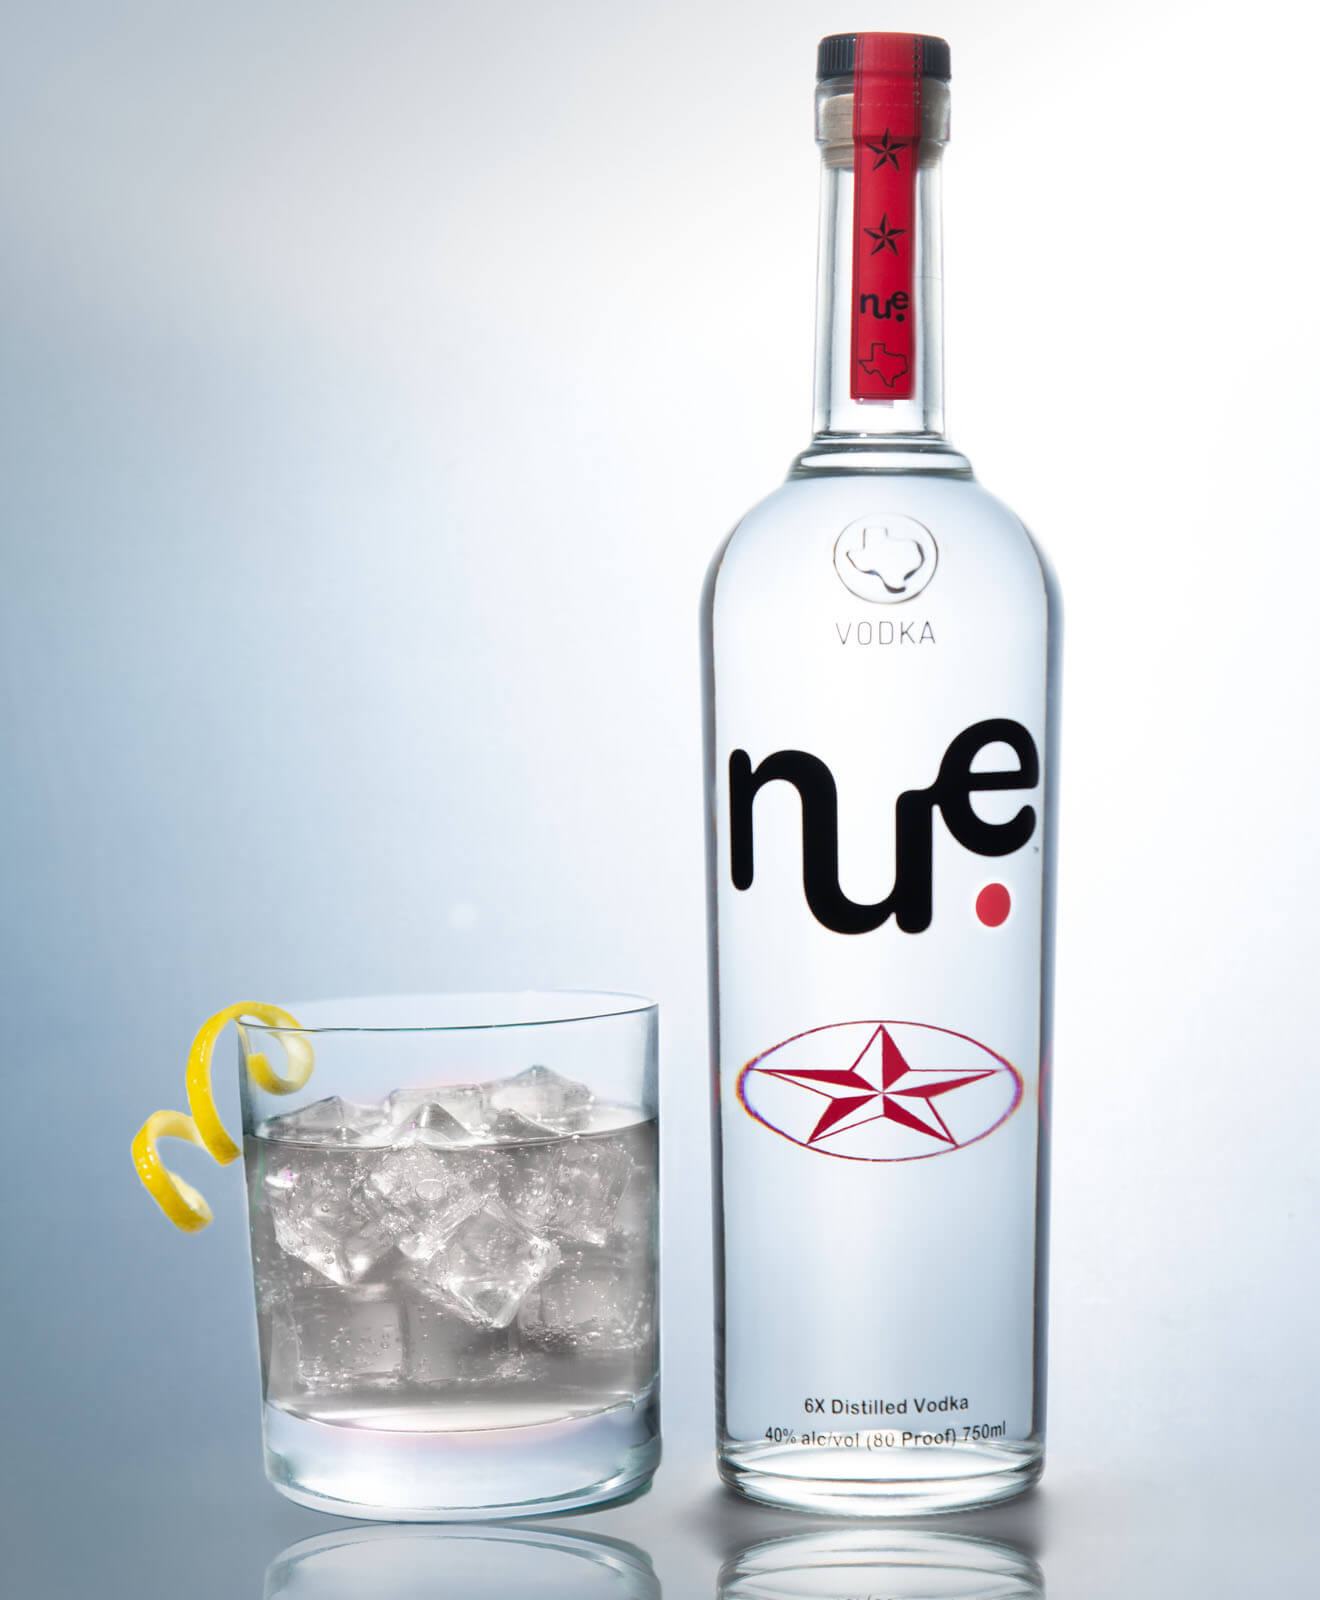 Nue Vodka, grey skies bottle on white